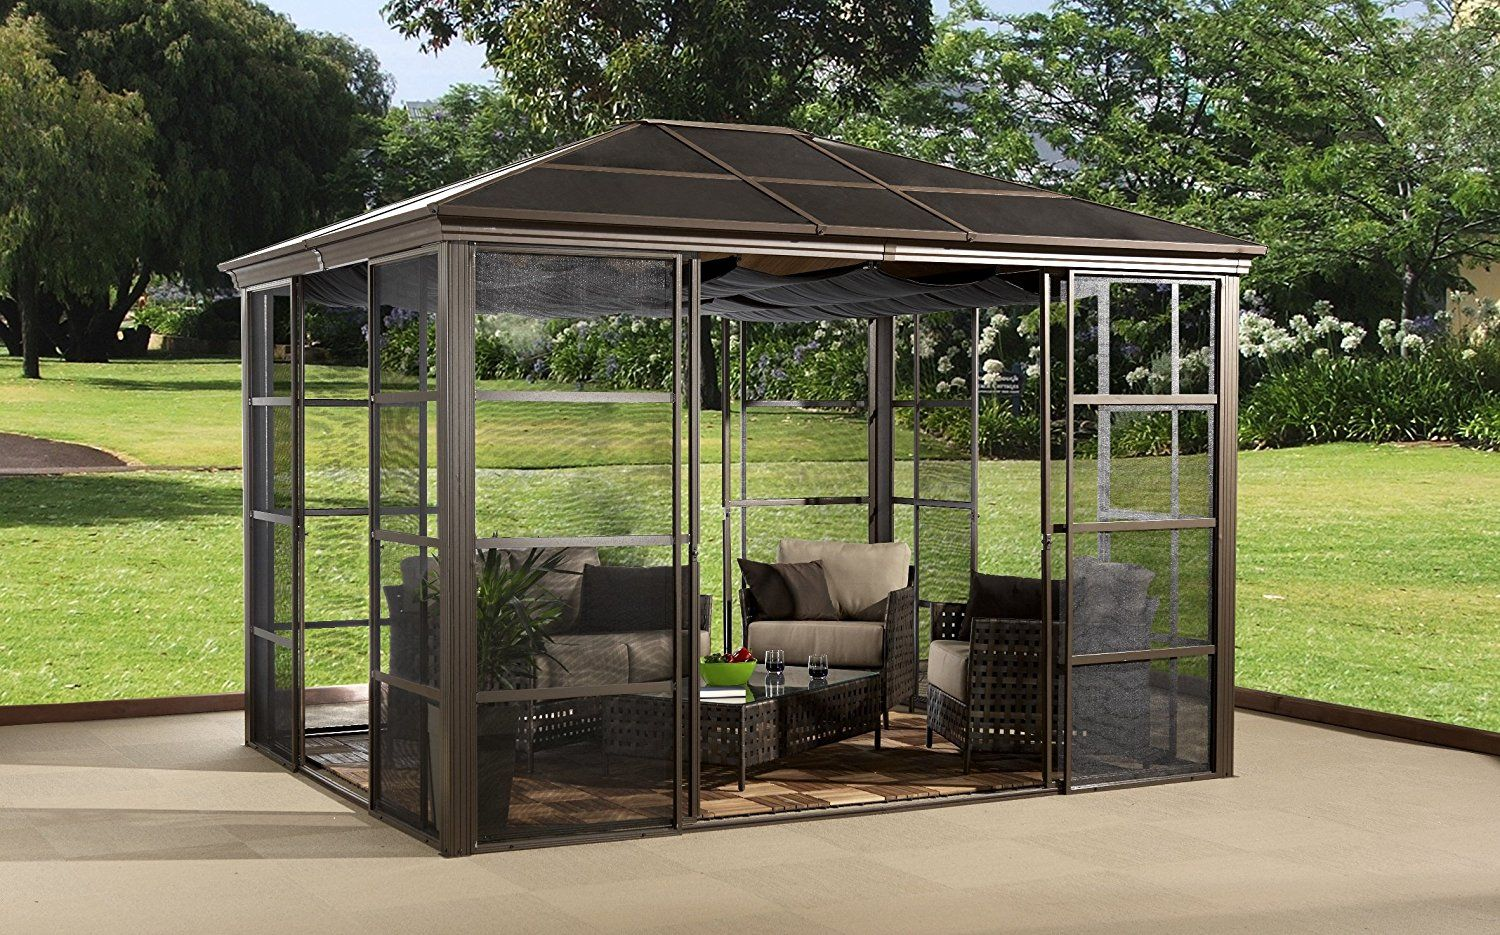 5 Portable Gazebos That Will Protect You With Images Hardtop